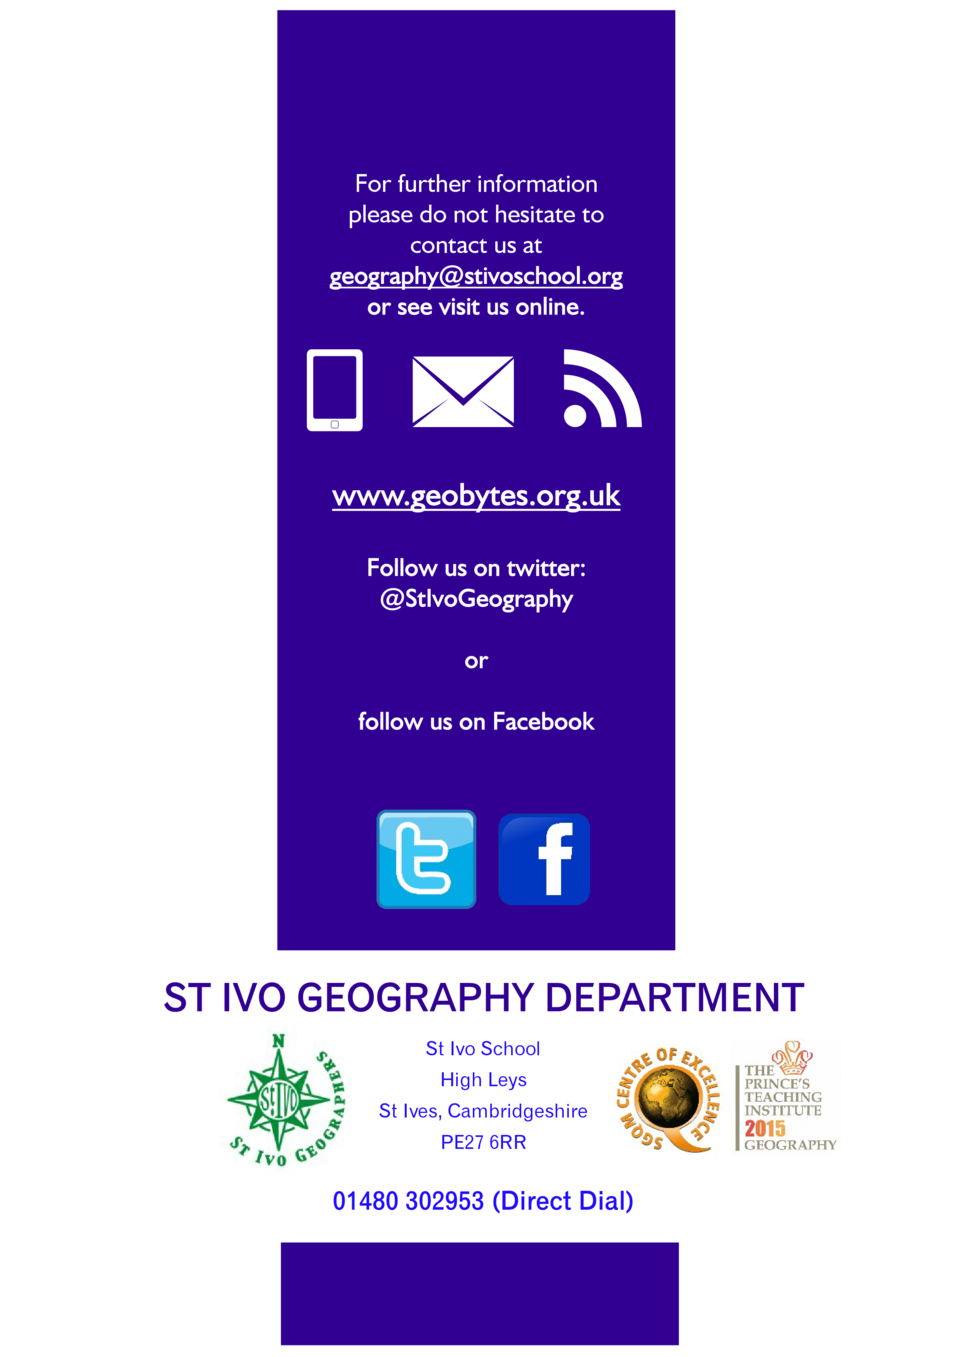 For further information please do not hesitate to contact us at    ST IVO  St Ivo School High Leys St Ives, Cambridgeshire...